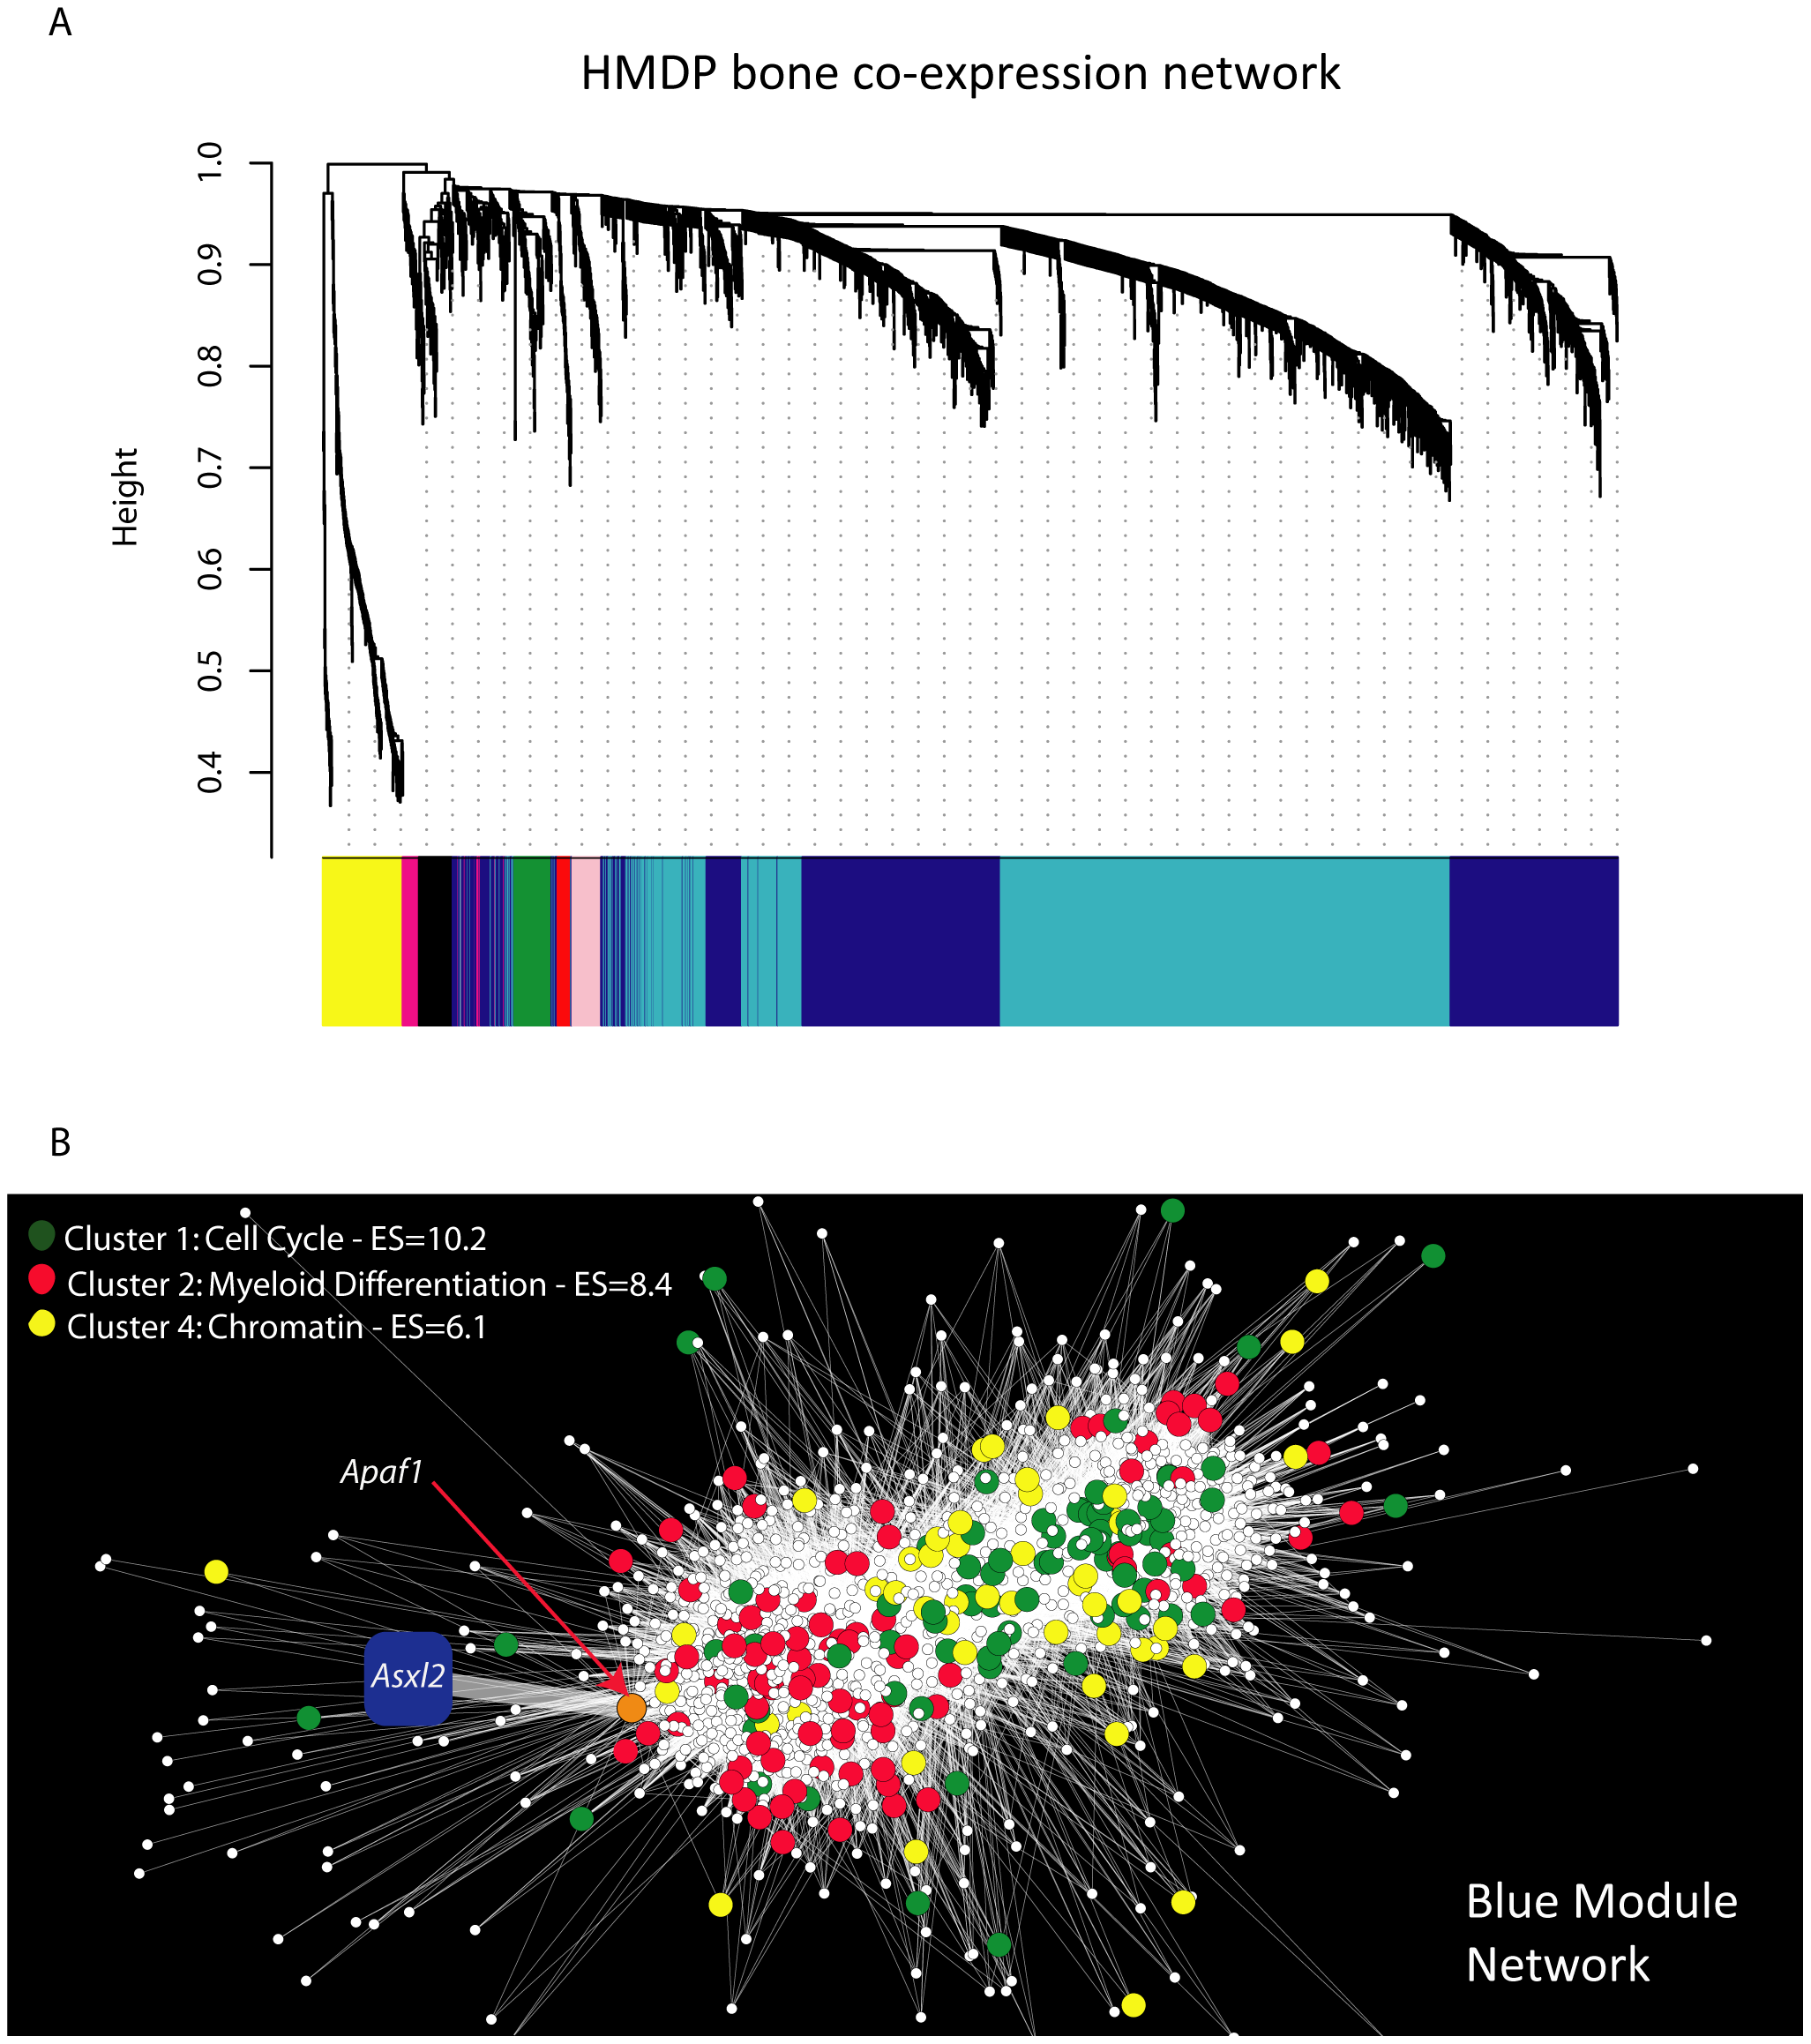 Gene co-expression network analysis reveals that <i>Asxl2</i> is connected to genes involved in myeloid cell differentiation.